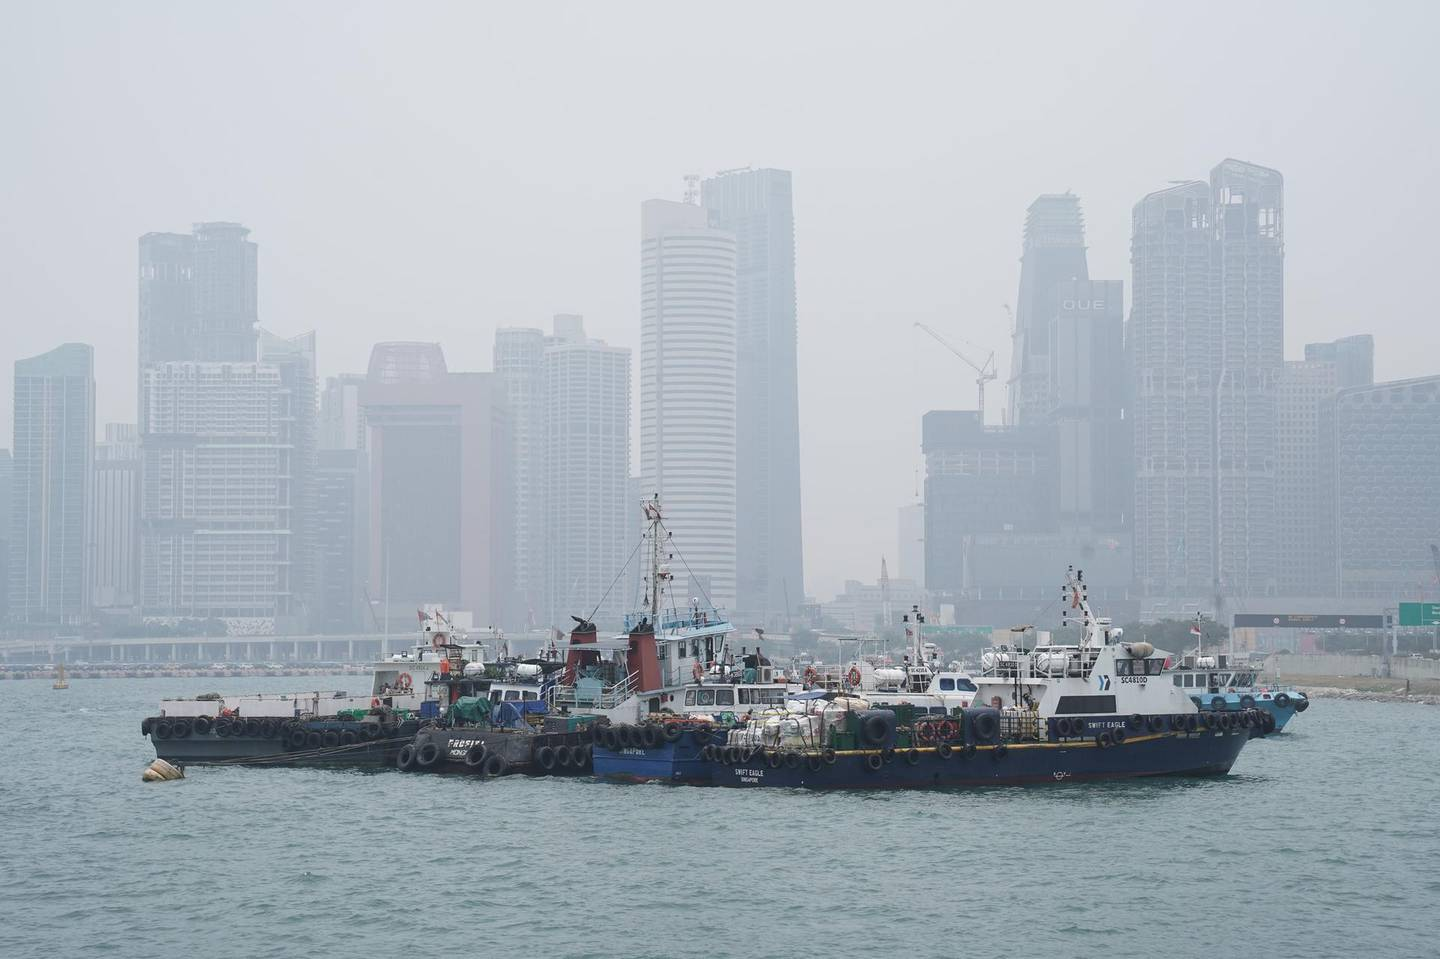 Buildings stand shrouded beyond anchored boats in Singapore, on Wednesday, Sept. 18, 2019. The air quality level in Singapore turned unhealthy ahead of the Formula 1 race this weekend, while Kuala Lumpur was ranked among the world's most polluted cities, as wind from neighboring Indonesia continued to sweep in ash and smoke from illegal burning of forests and farm land. Photographer: Dimas Ardian/Bloomberg